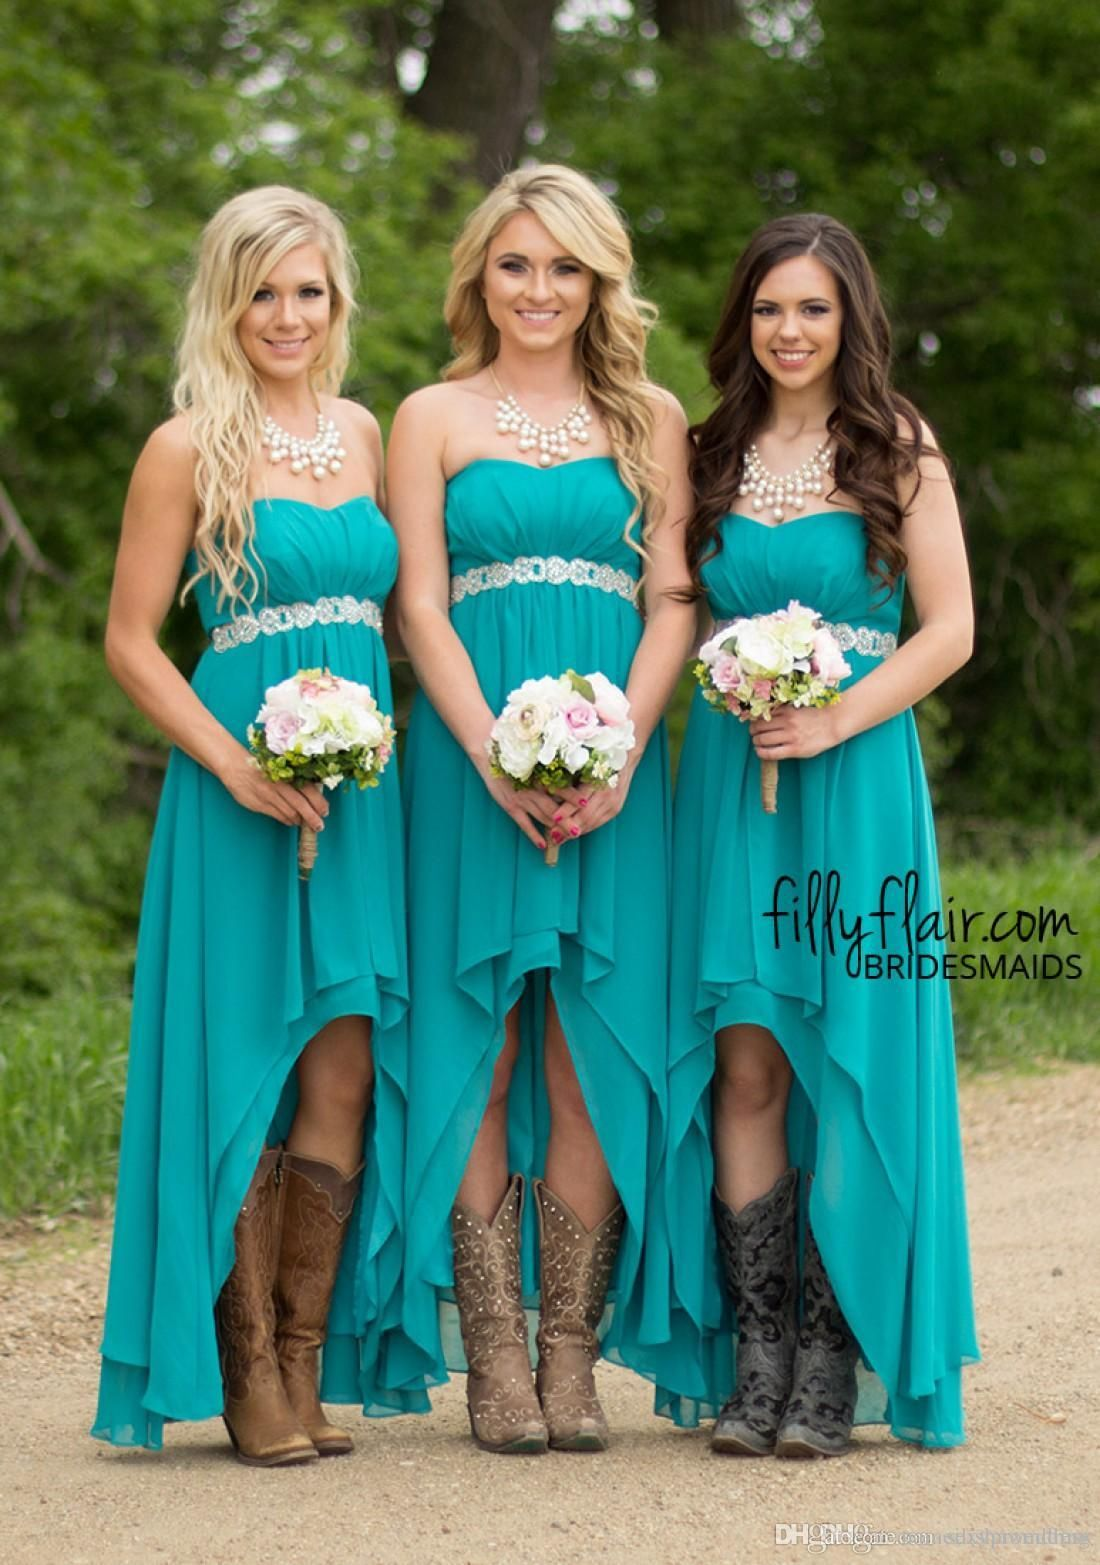 Modest teal turquoise bridesmaid dresses 2016 cheap high low modest teal turquoise bridesmaid dresses 2016 cheap high low country wedding guest gowns under 100 beaded chiffon junior plus size maternity maternity ombrellifo Images